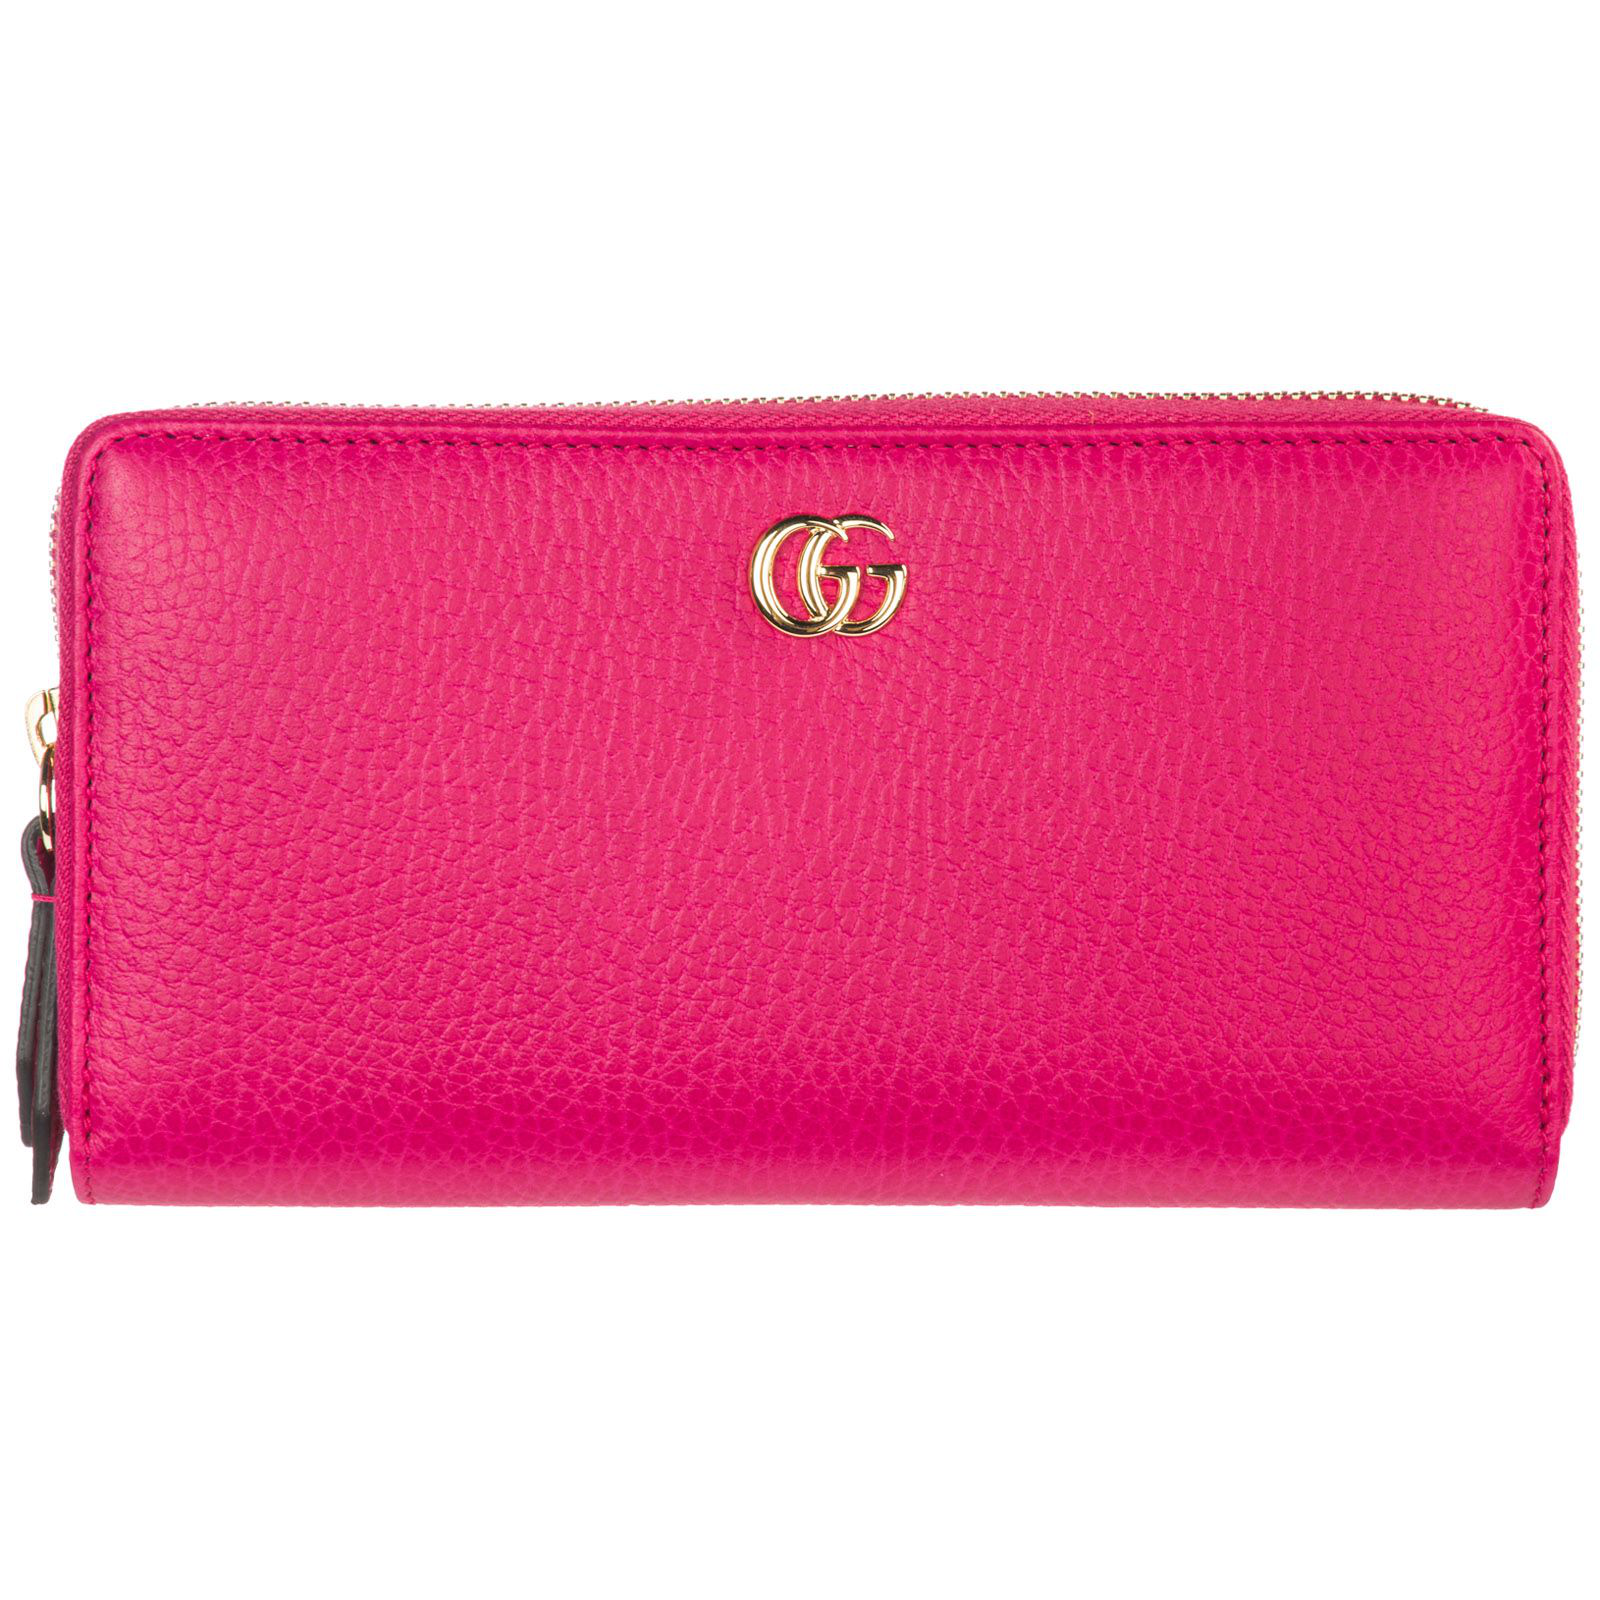 72c41b0233c2 Gucci Wallet Genuine Leather Coin Case Holder Purse Card Bifold In Fucsia